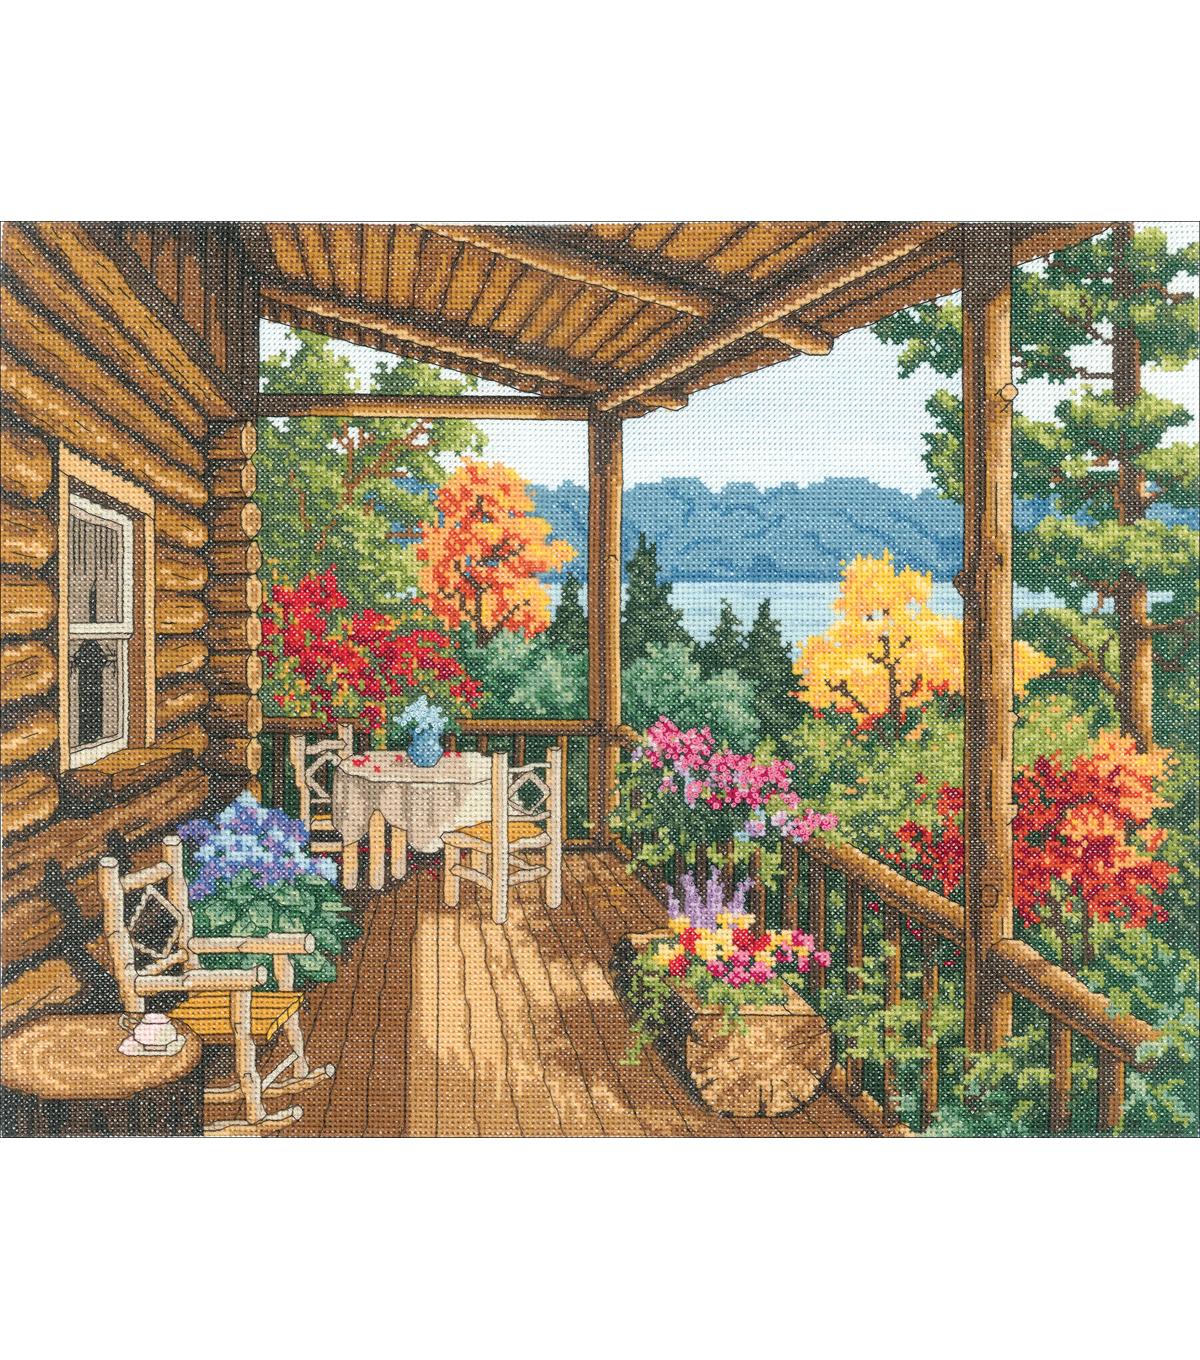 Log Cabin Covered Porch Counted Cross Stitch Kit-16\u0022X12\u0022 14 Count